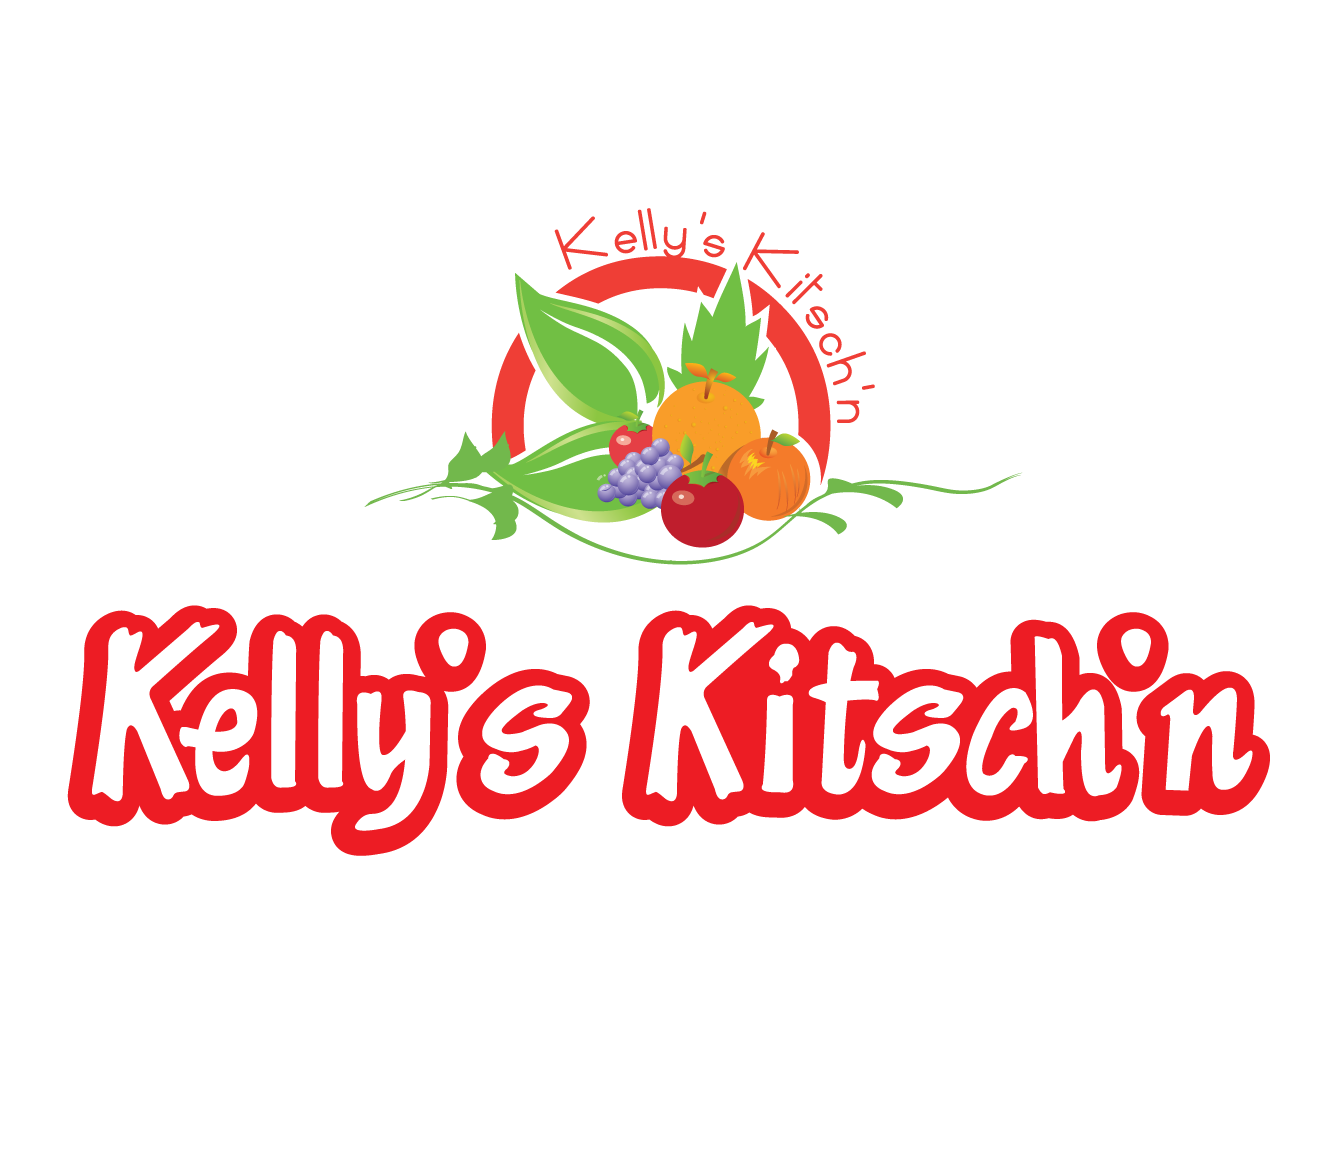 Logo Design by 354studio - Entry No. 76 in the Logo Design Contest Unique Logo Design Wanted for Kelly's Kitsch'n.